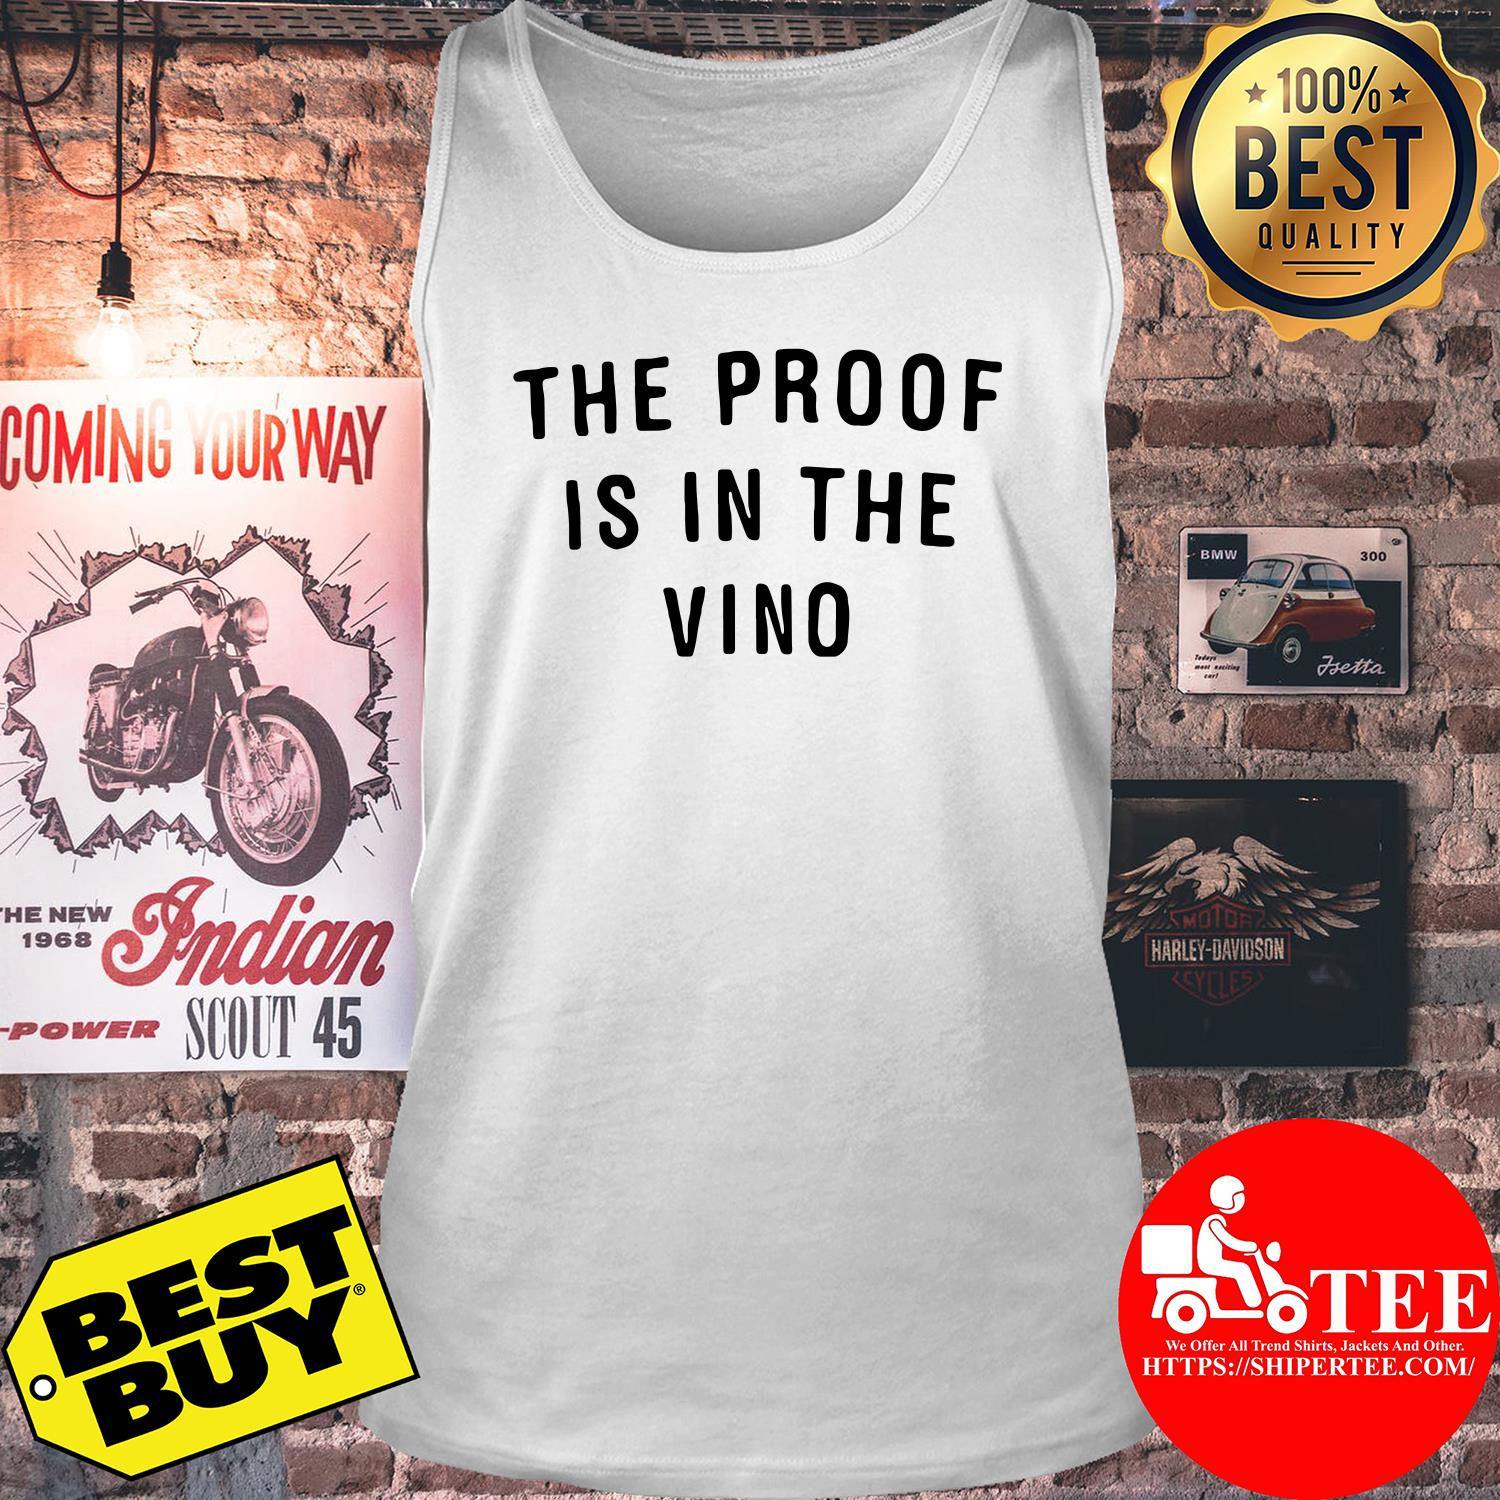 The proof is in the vino tank top